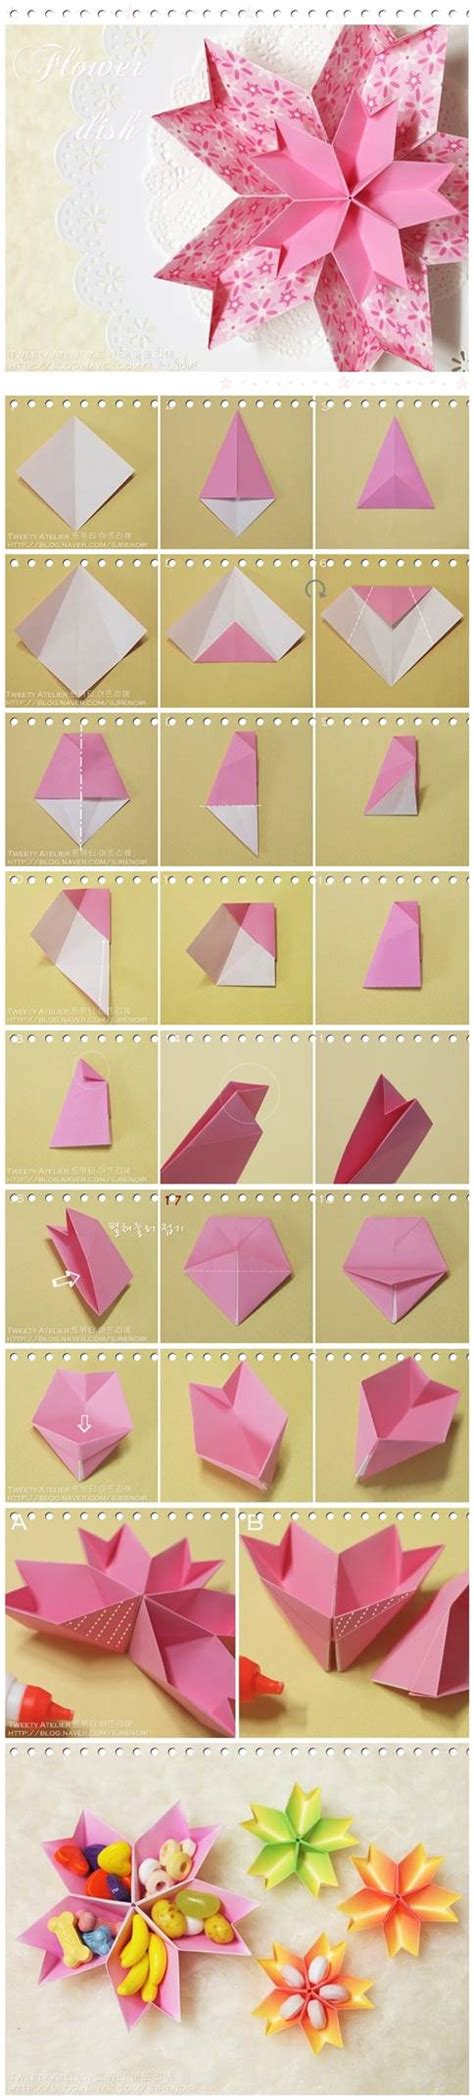 Steps To Make A Paper Flower - how to make paper flower dish step by step diy tutorial